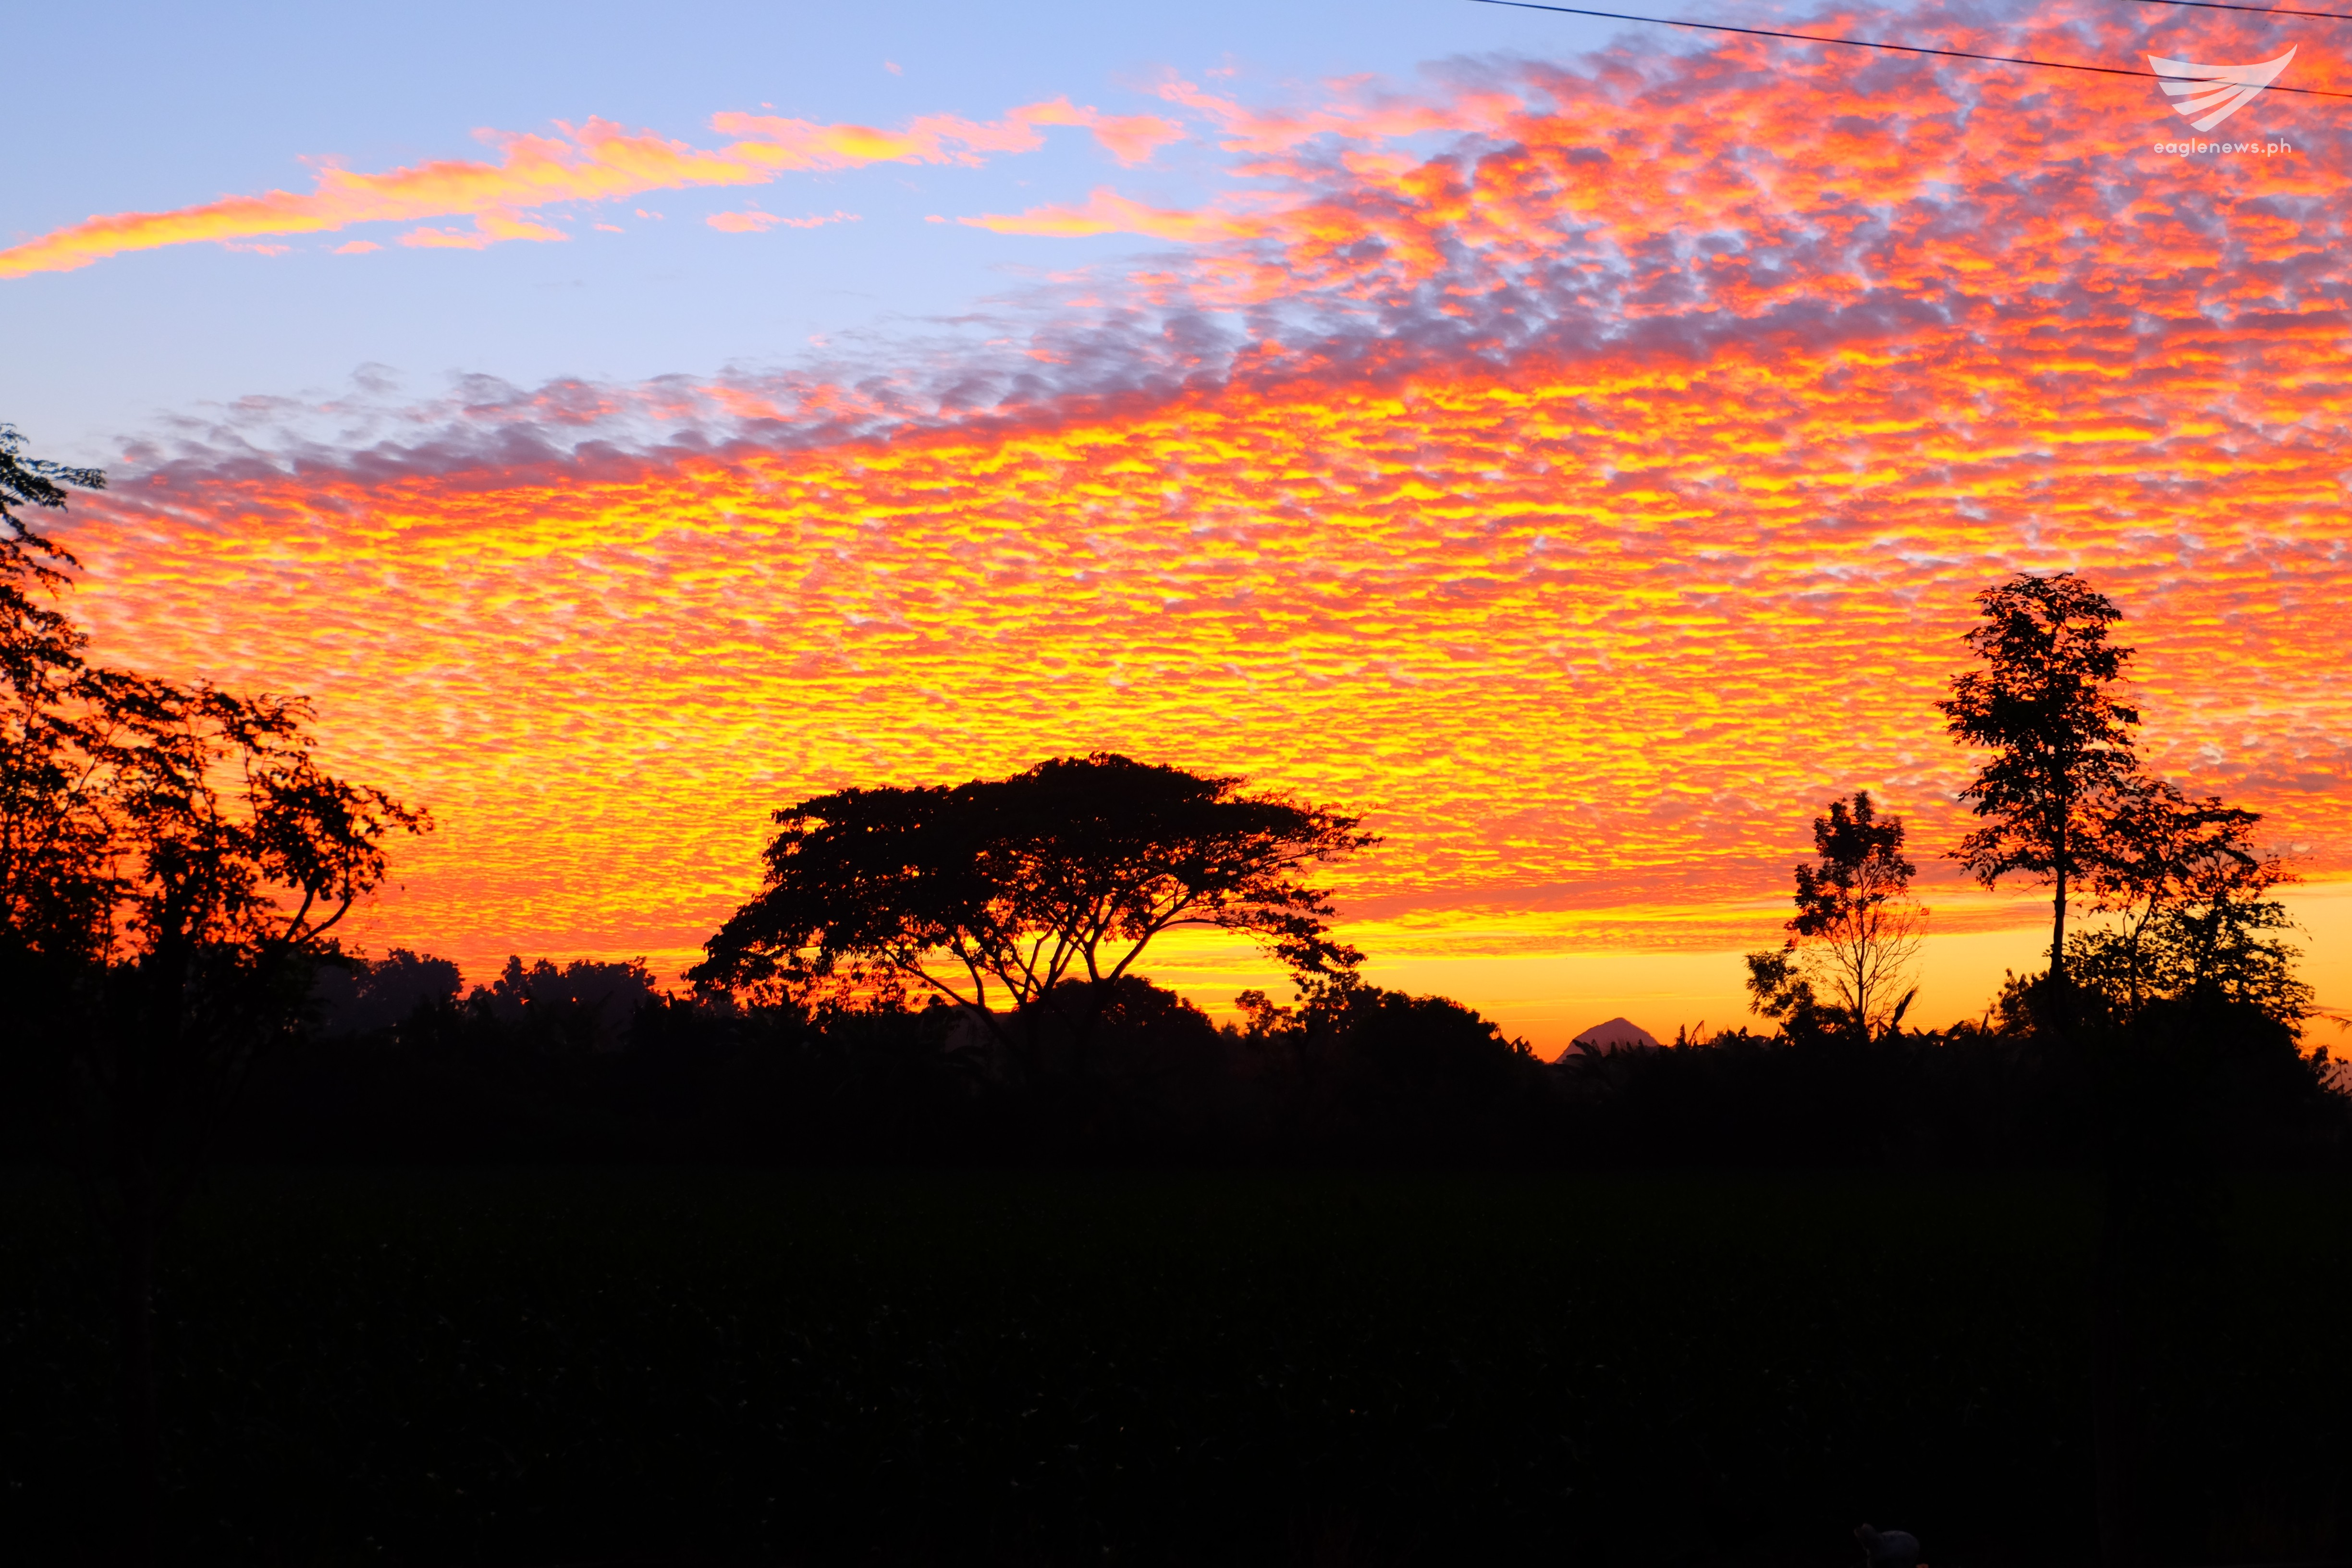 Mesmerizing sky in Pangasinan East at sunset by Raff Marquez  (Eagle News Service)